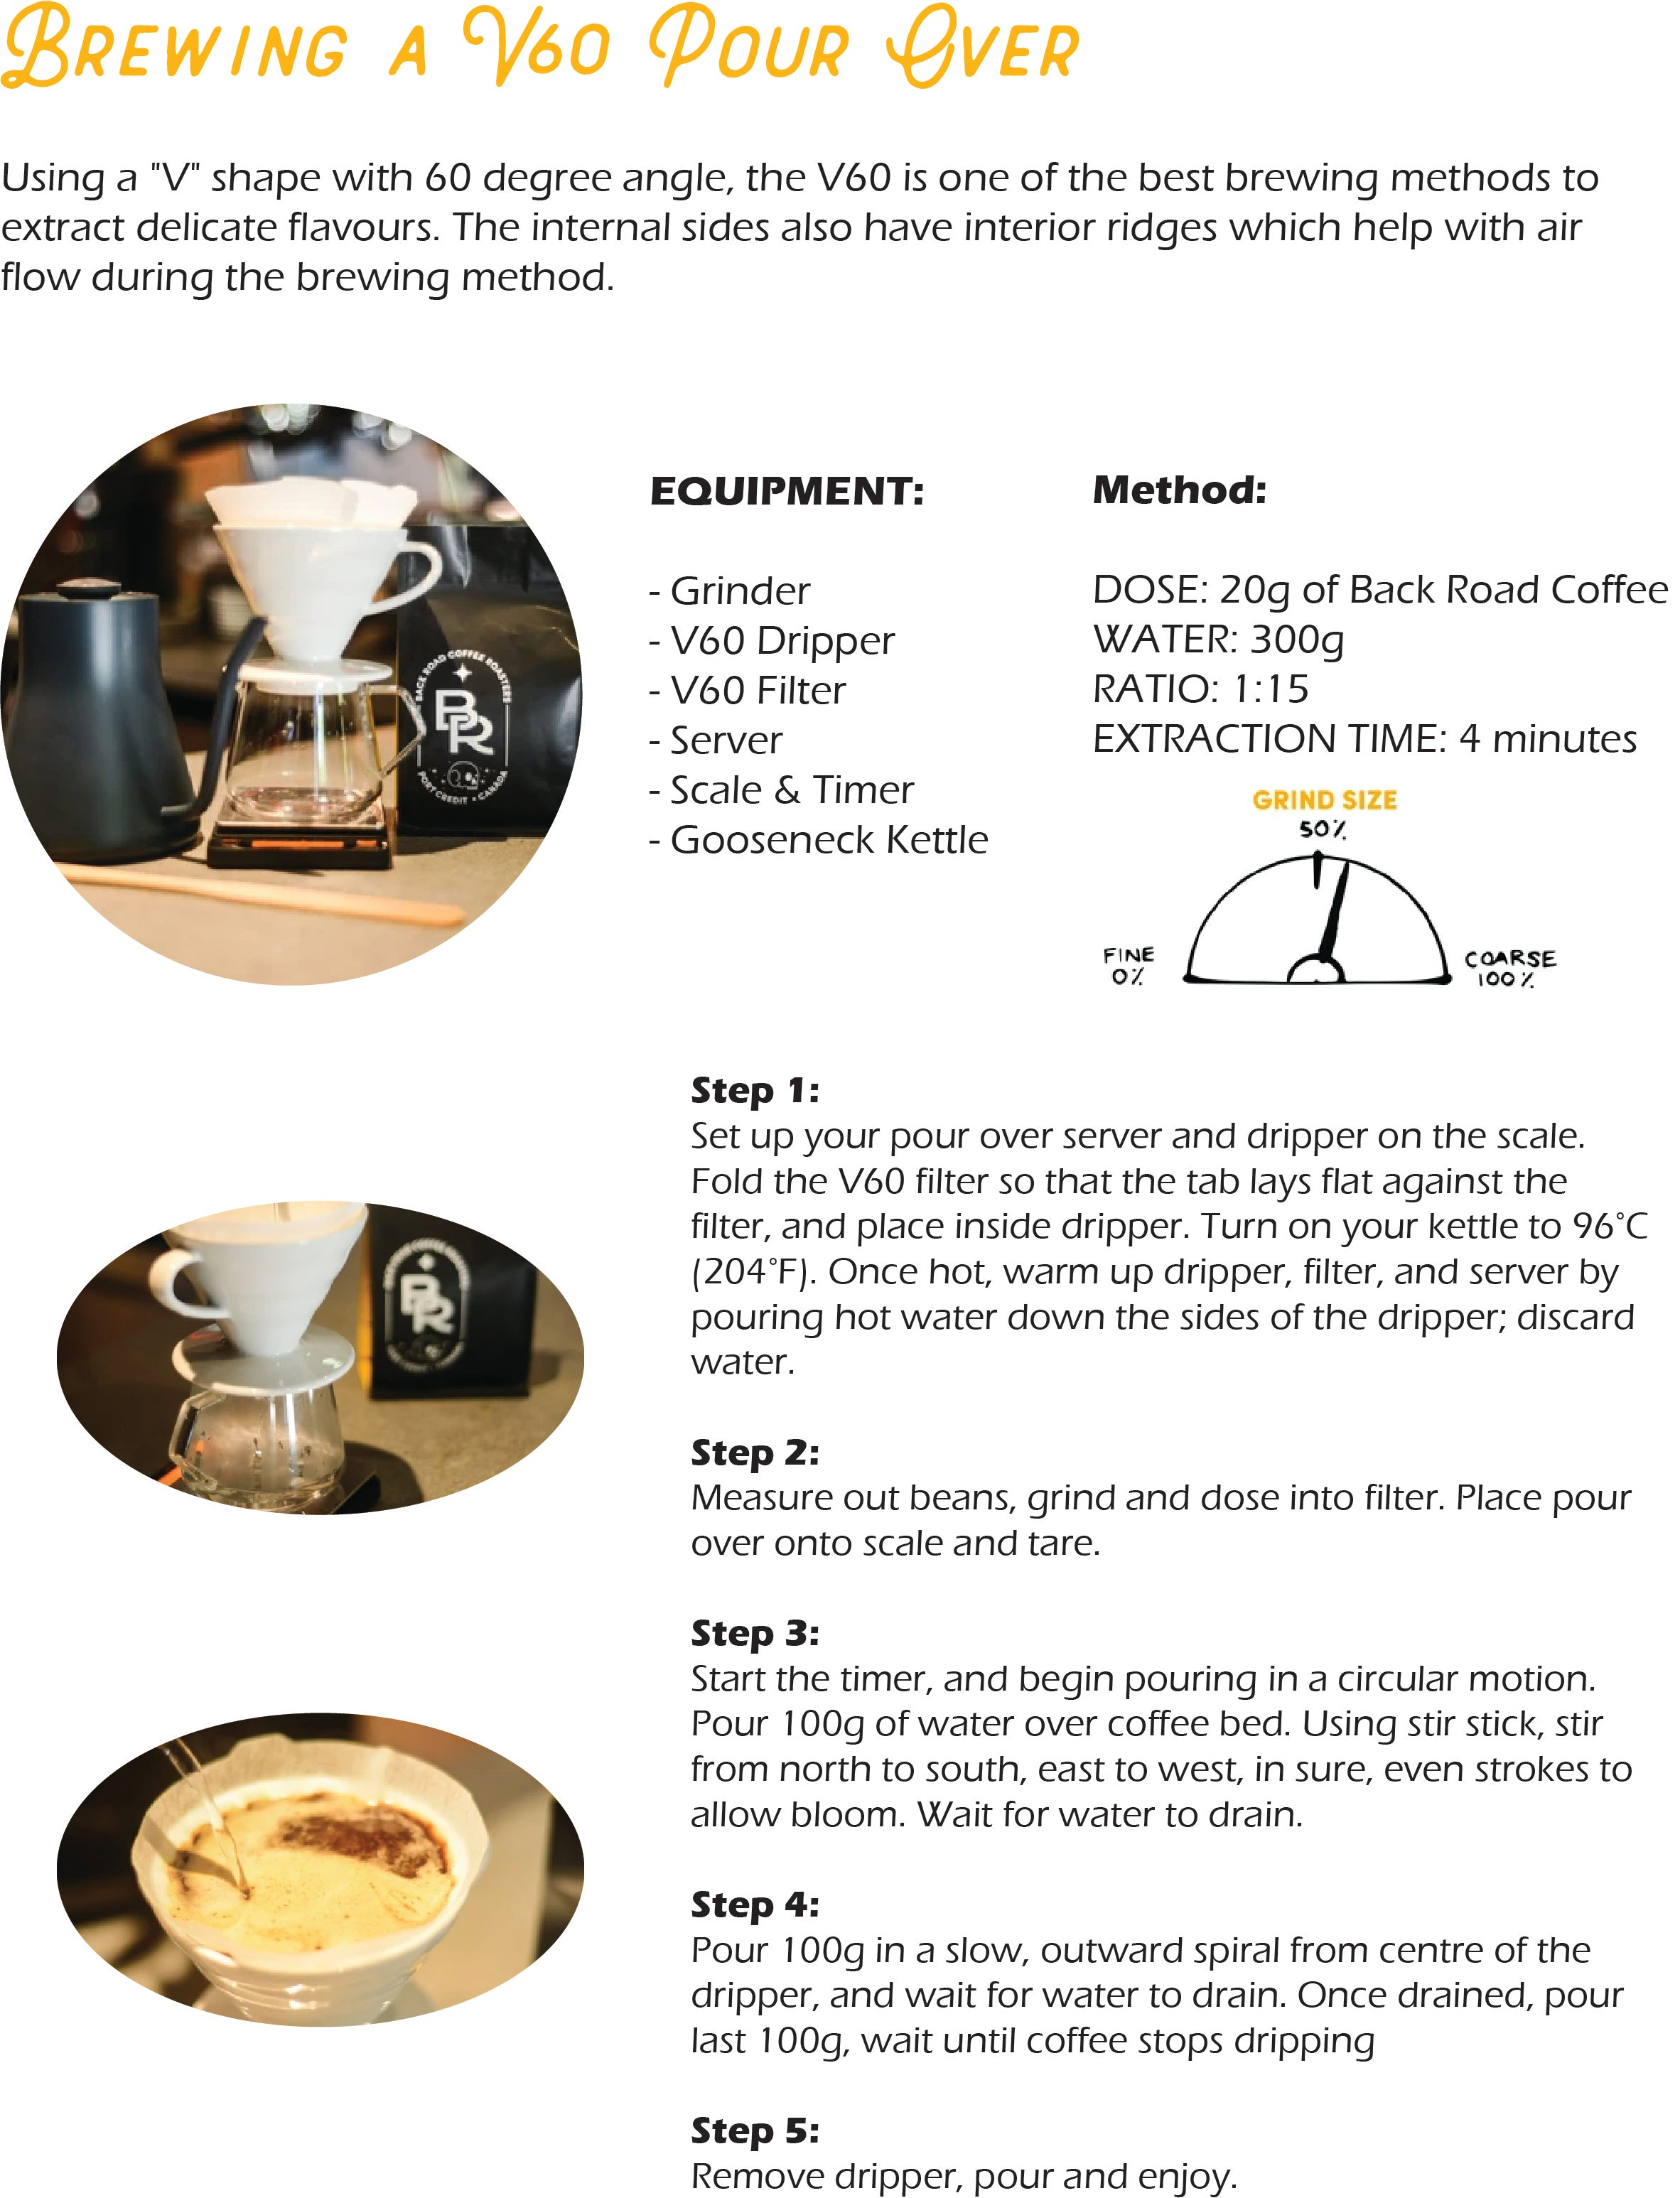 Back Road V60 Pour Over Brew Guide